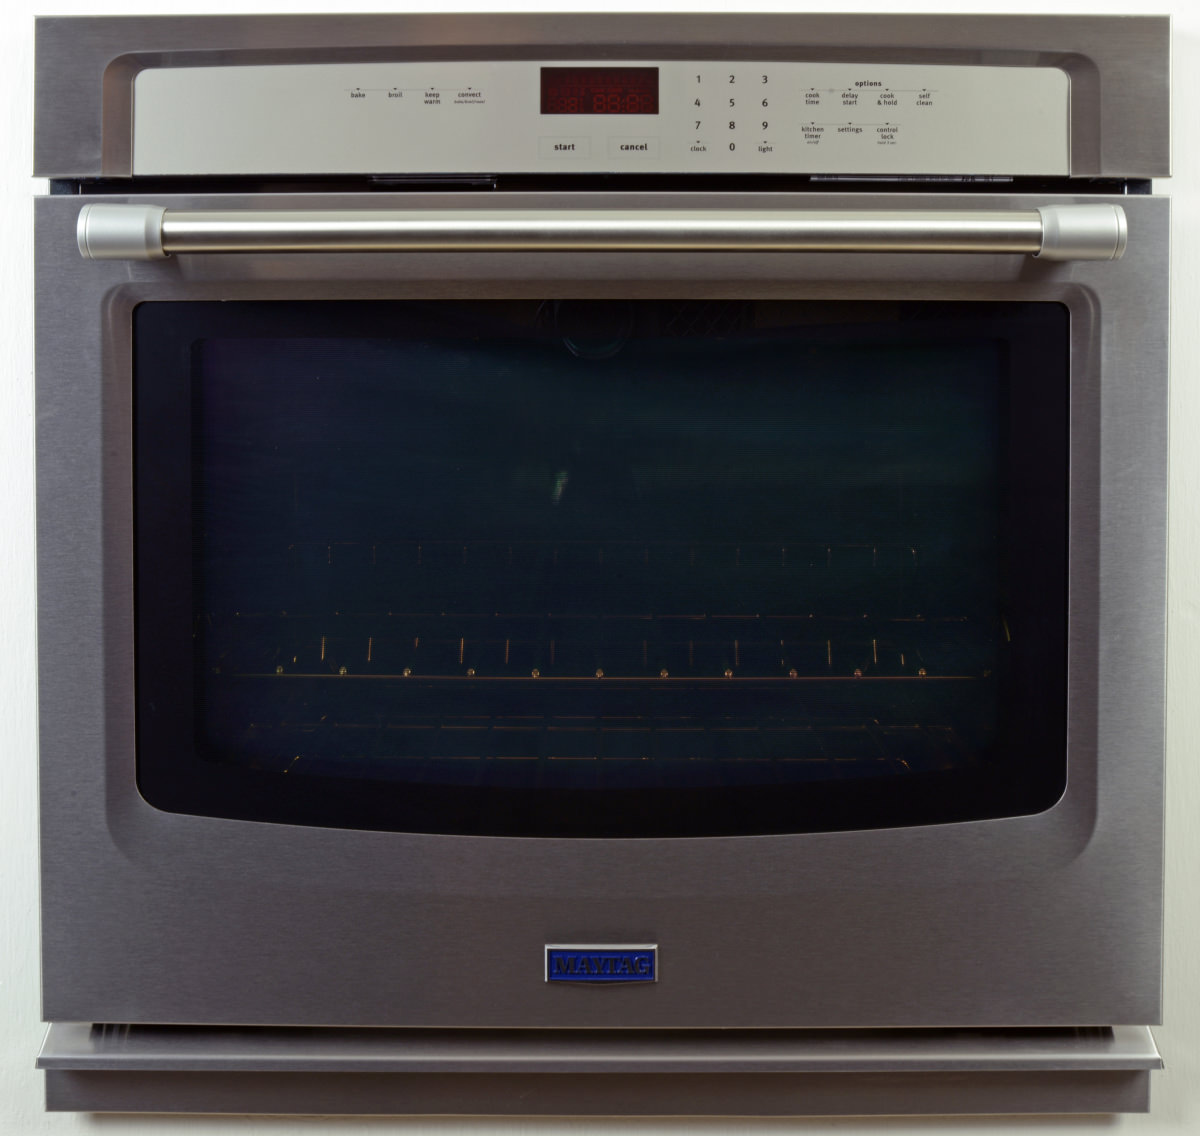 the maytag mew9530as single electric wall oven - Electric Wall Oven